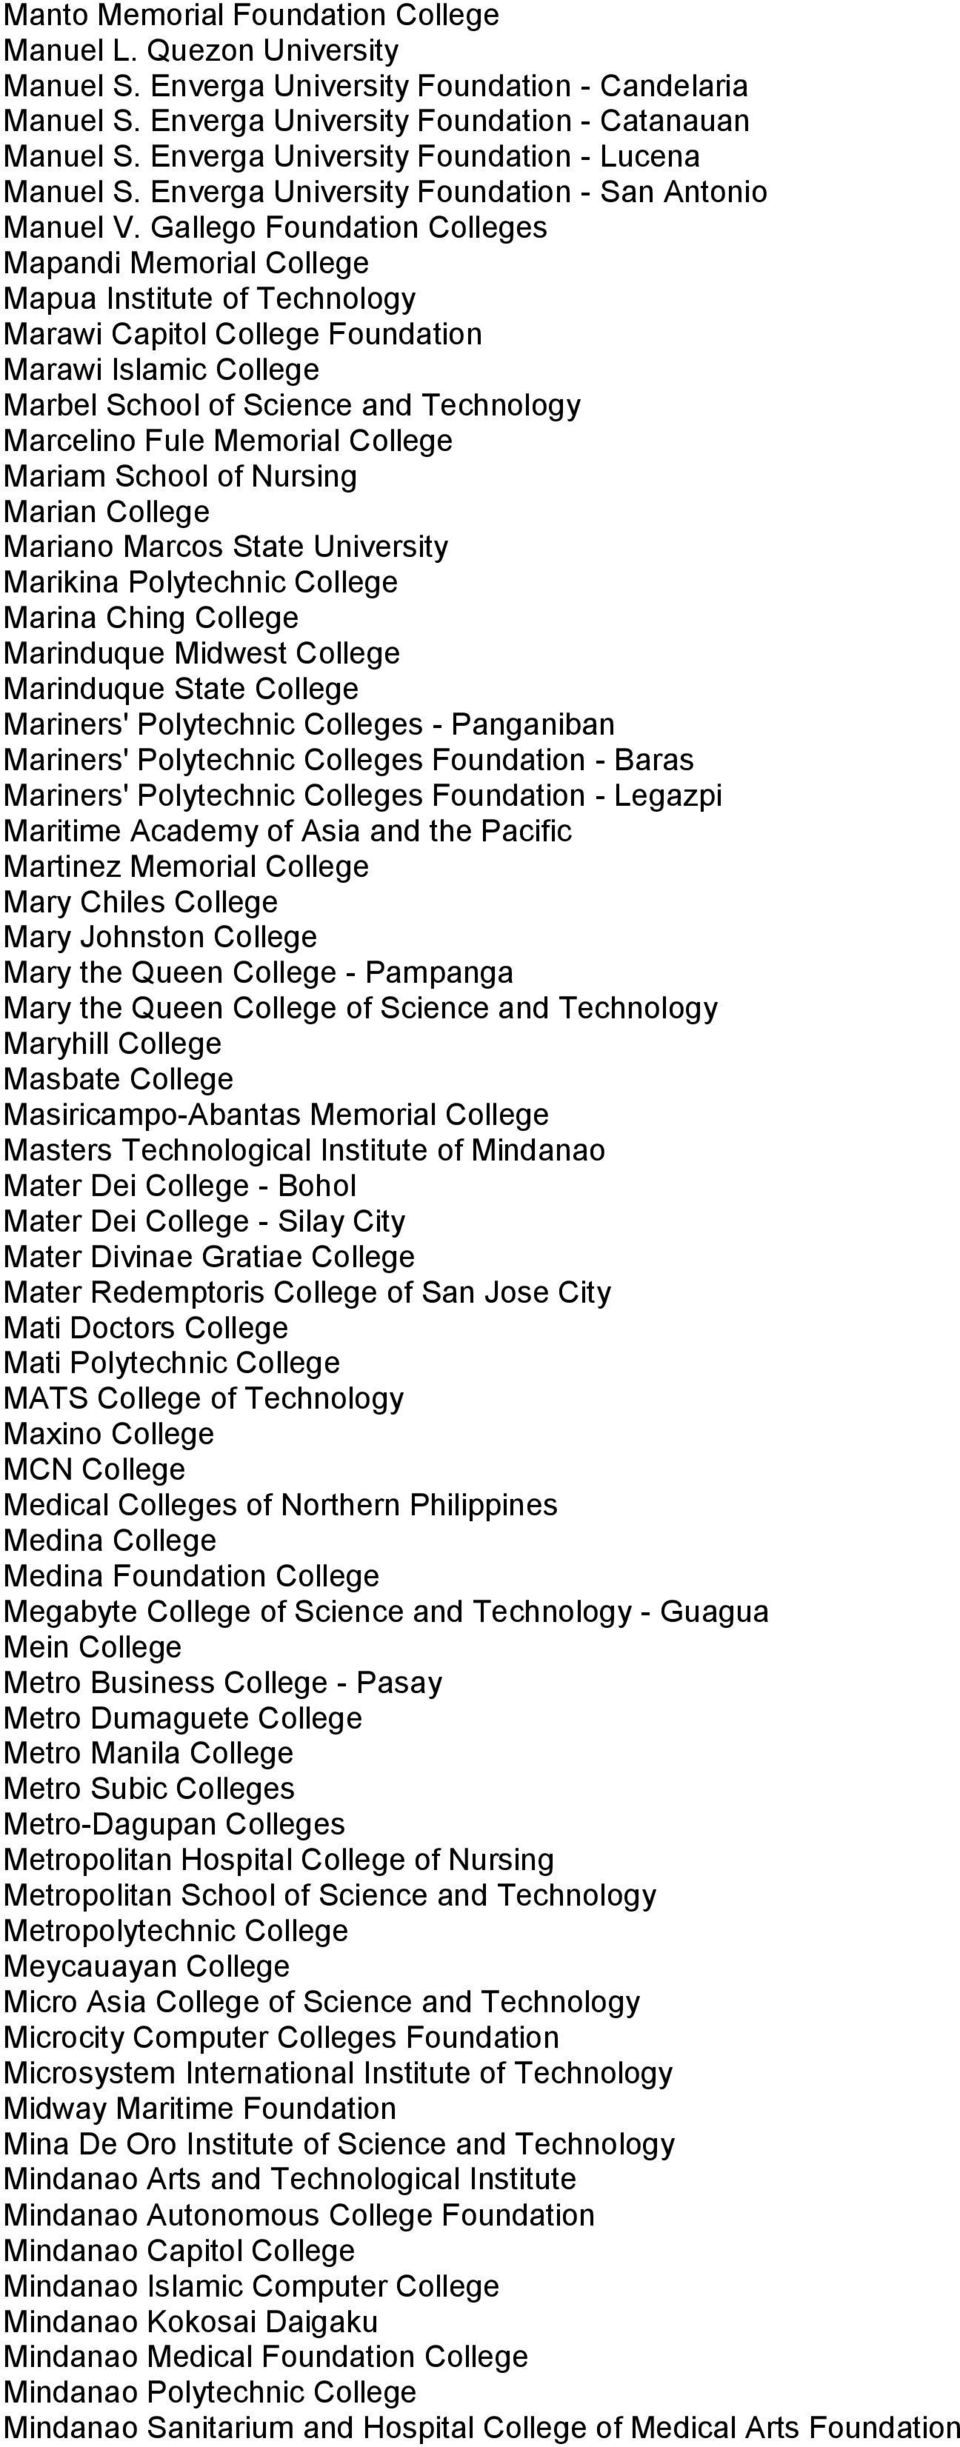 Gallego Foundation Colleges Mapandi Memorial College Mapua Institute of Technology Marawi Capitol College Foundation Marawi Islamic College Marbel School of Science and Technology Marcelino Fule